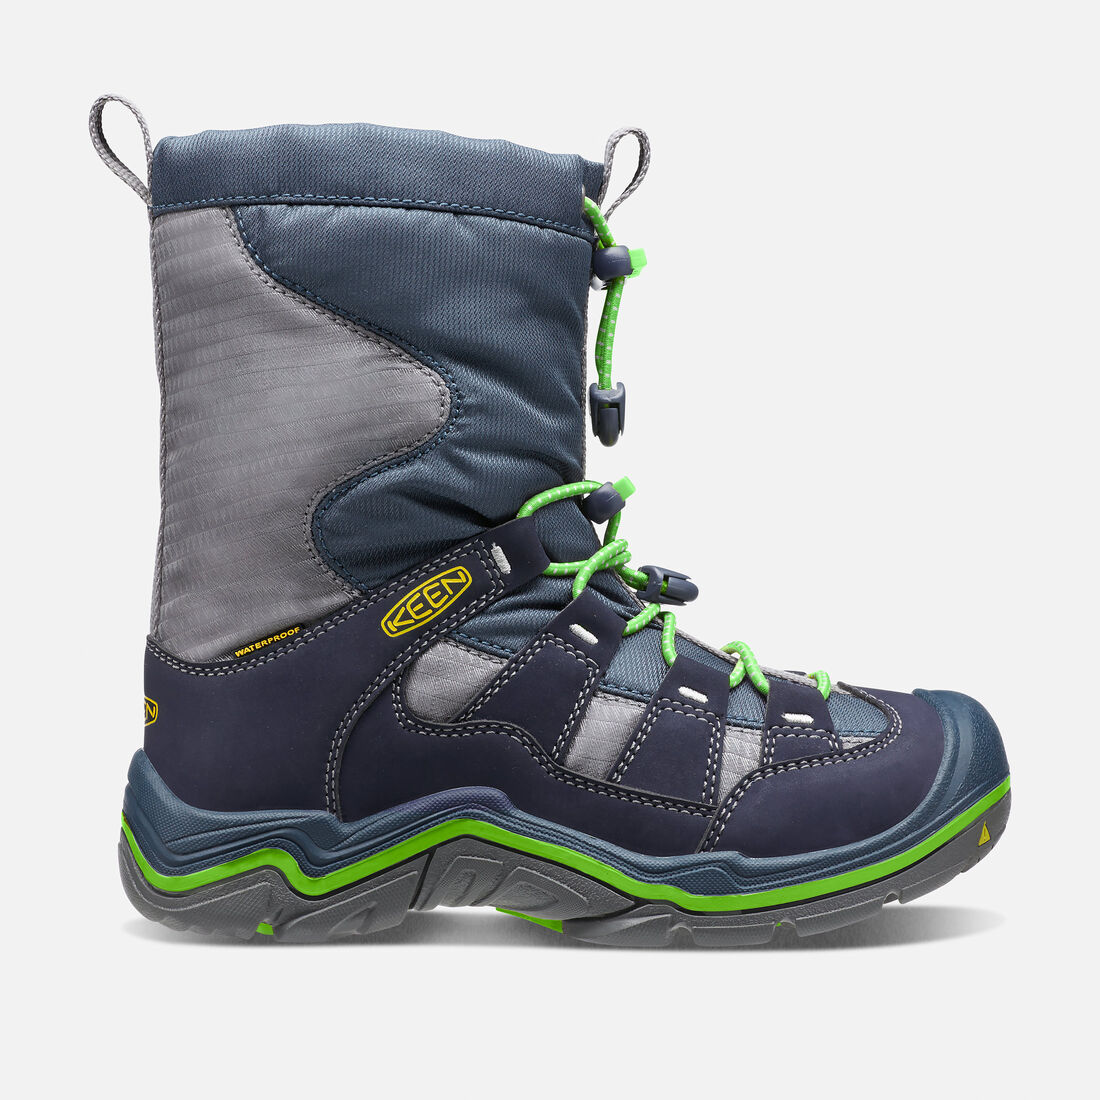 Big Kids' Winterport II Waterproof in Midnight Navy/Jasmine Green - large view.